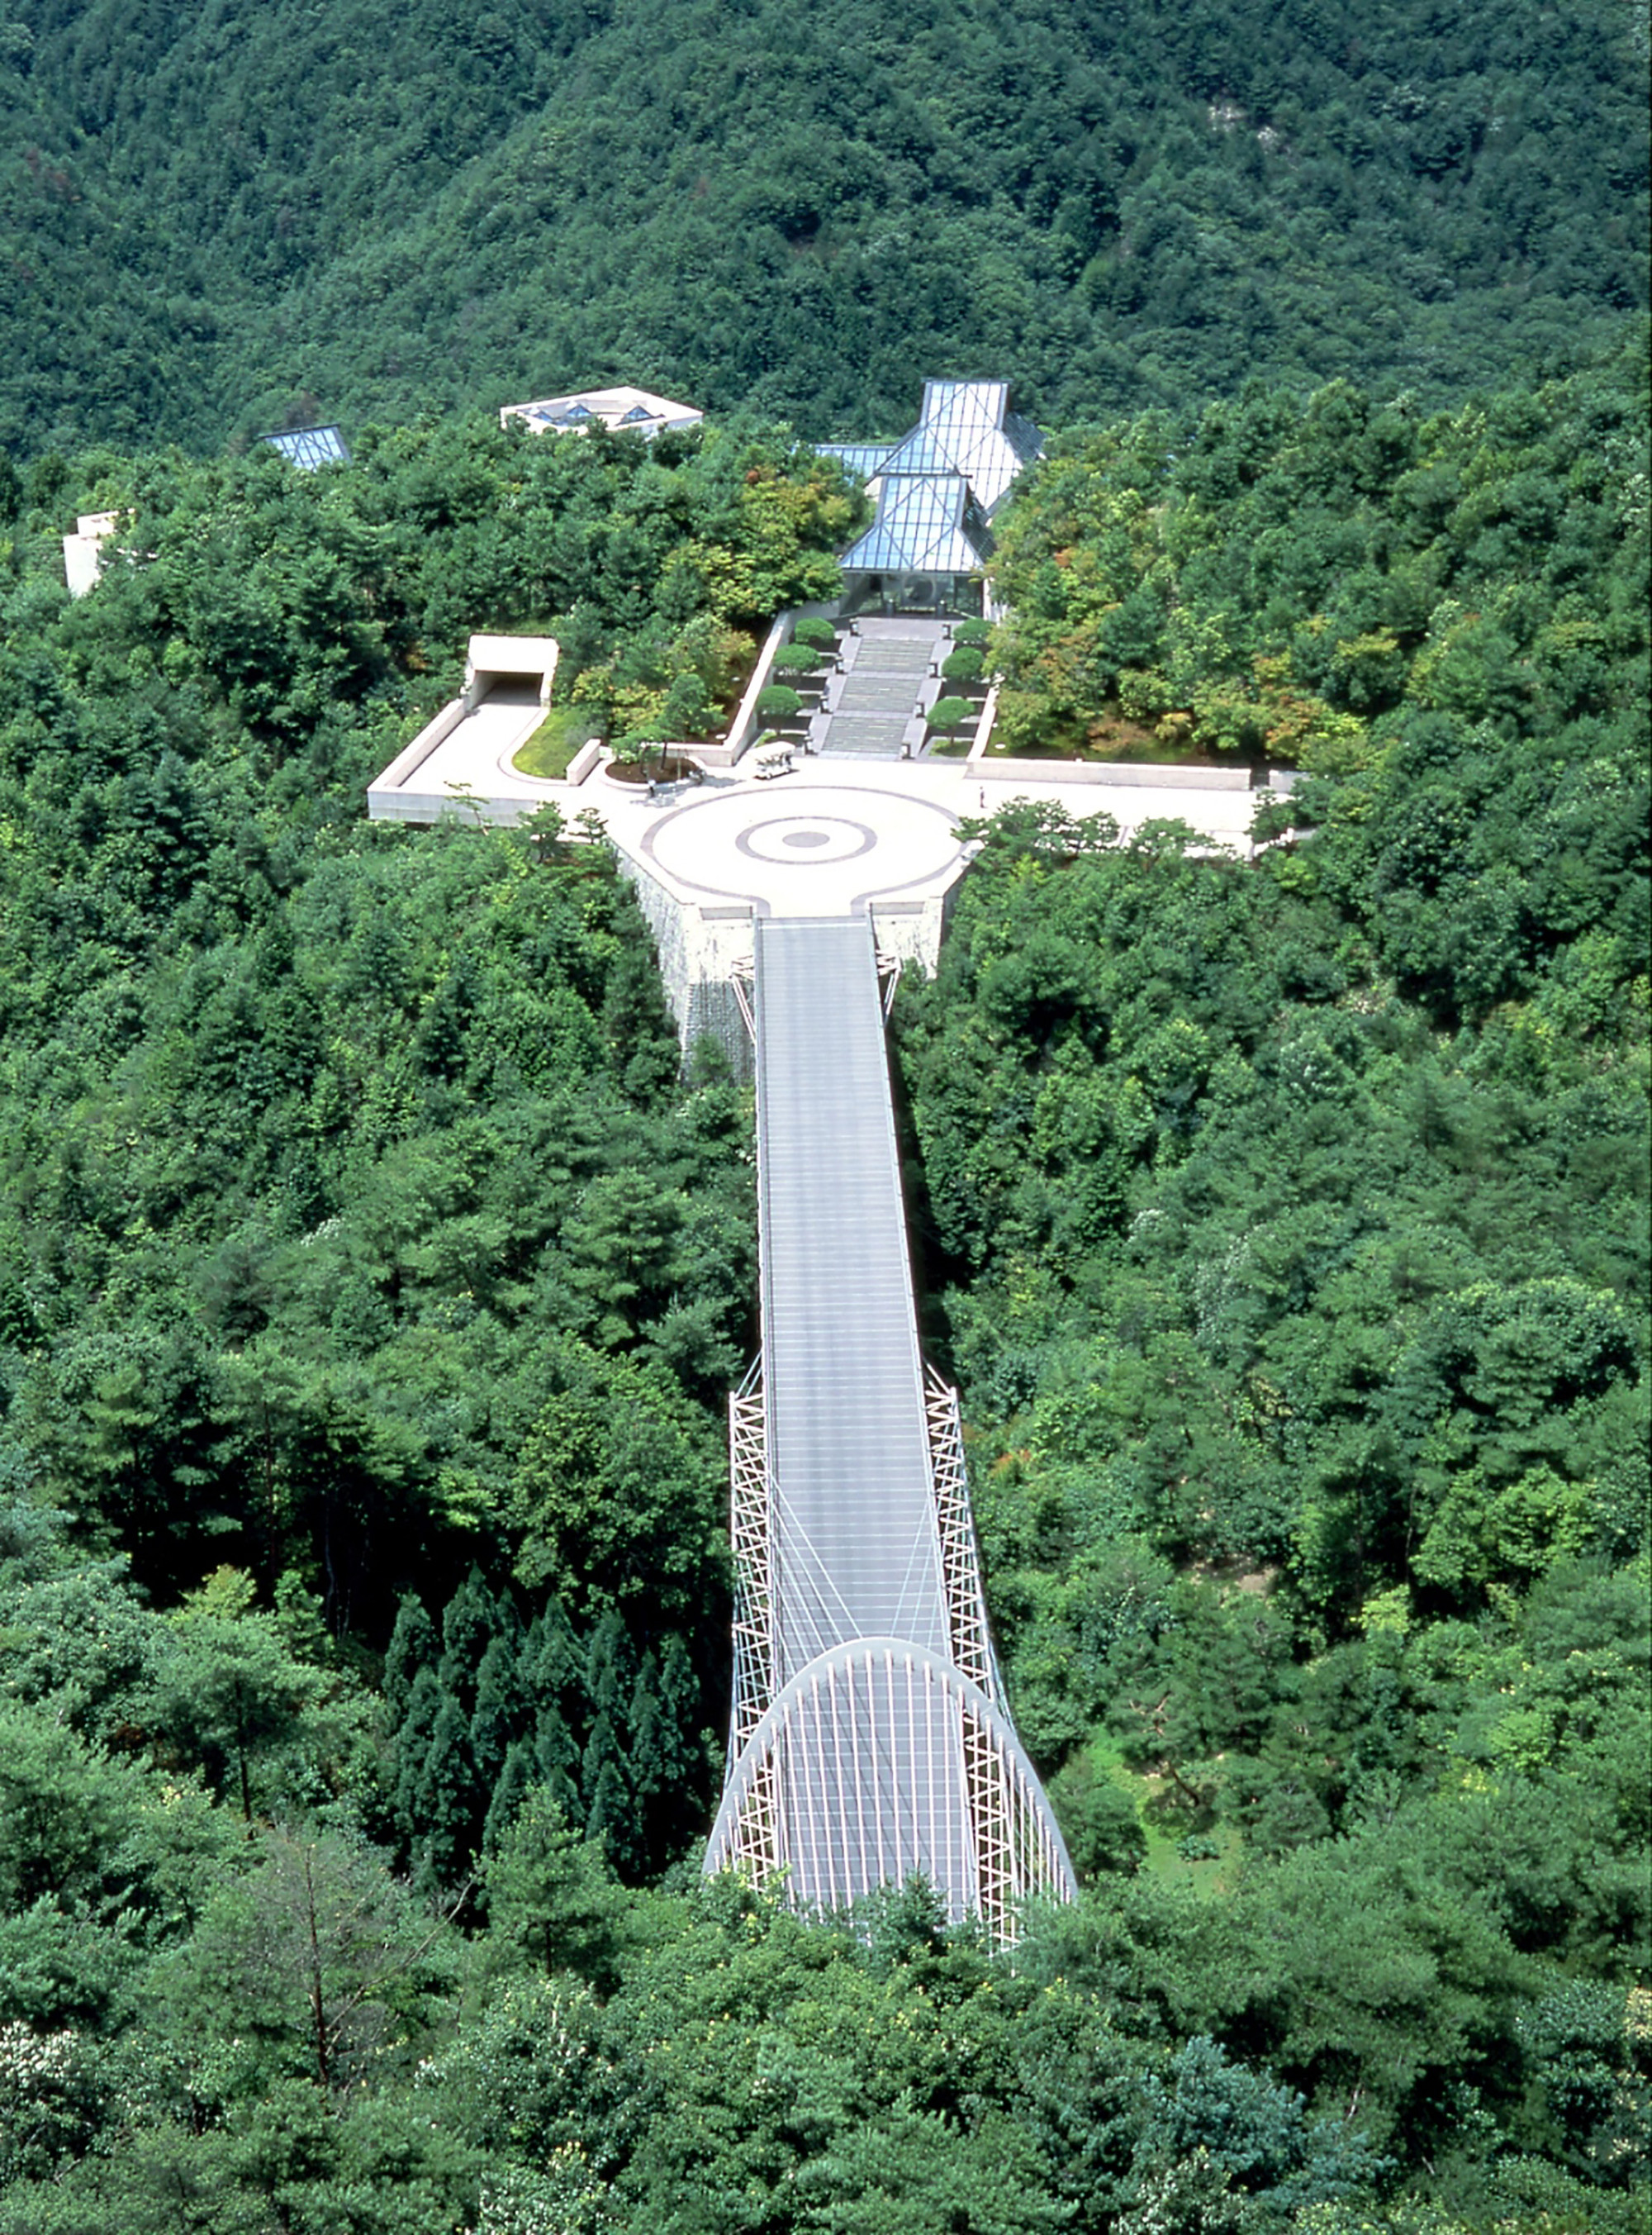 Ioh Ming Pei, Aerial view of the Miho museum